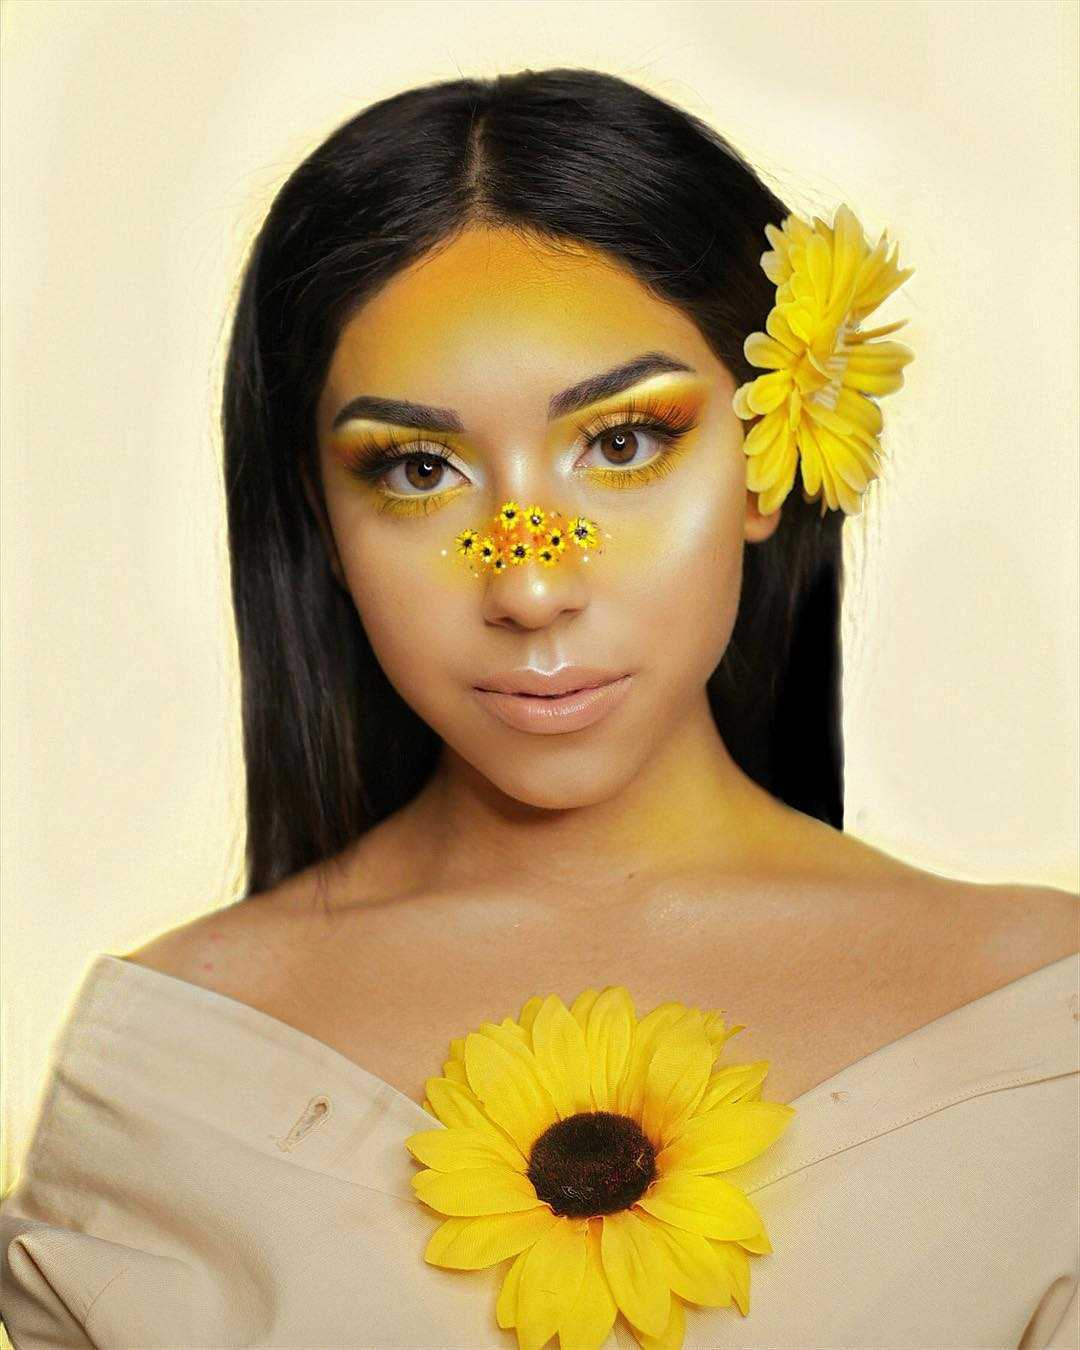 The Sun-kissed Makeup Look